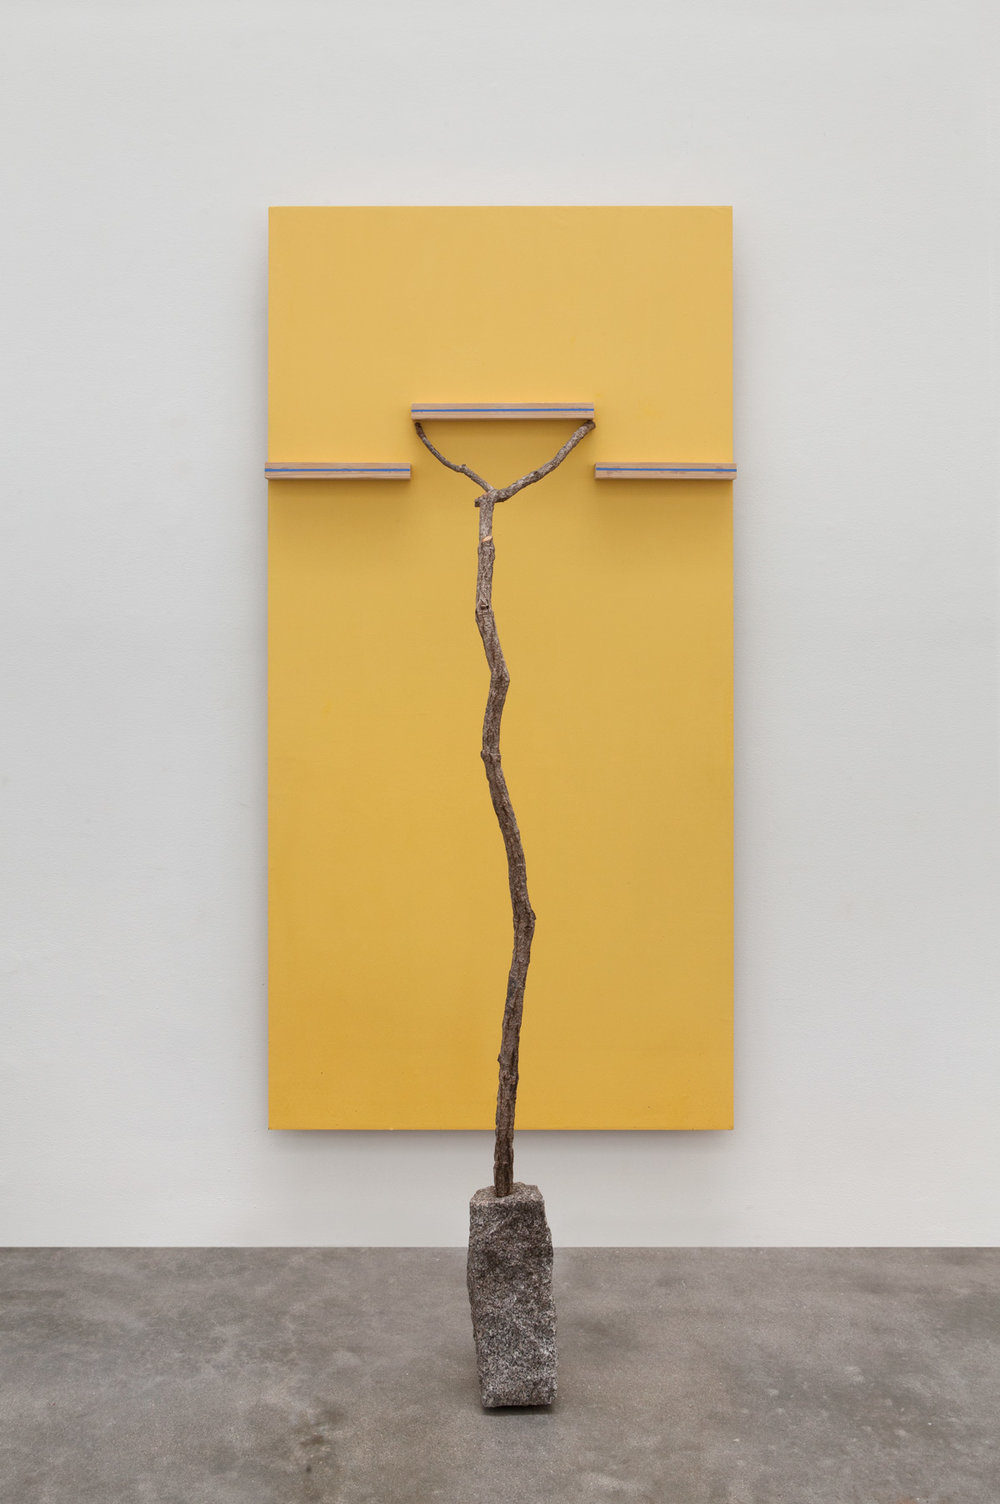 Placement of Unitary Situation , 2015 個景場化 ( Kokei Jōka)  Wood, paint, branch, stone 80 3/4 x 35 1/2 x 24 inches overall 205.1 x 90.2 x 61 centimeters overall